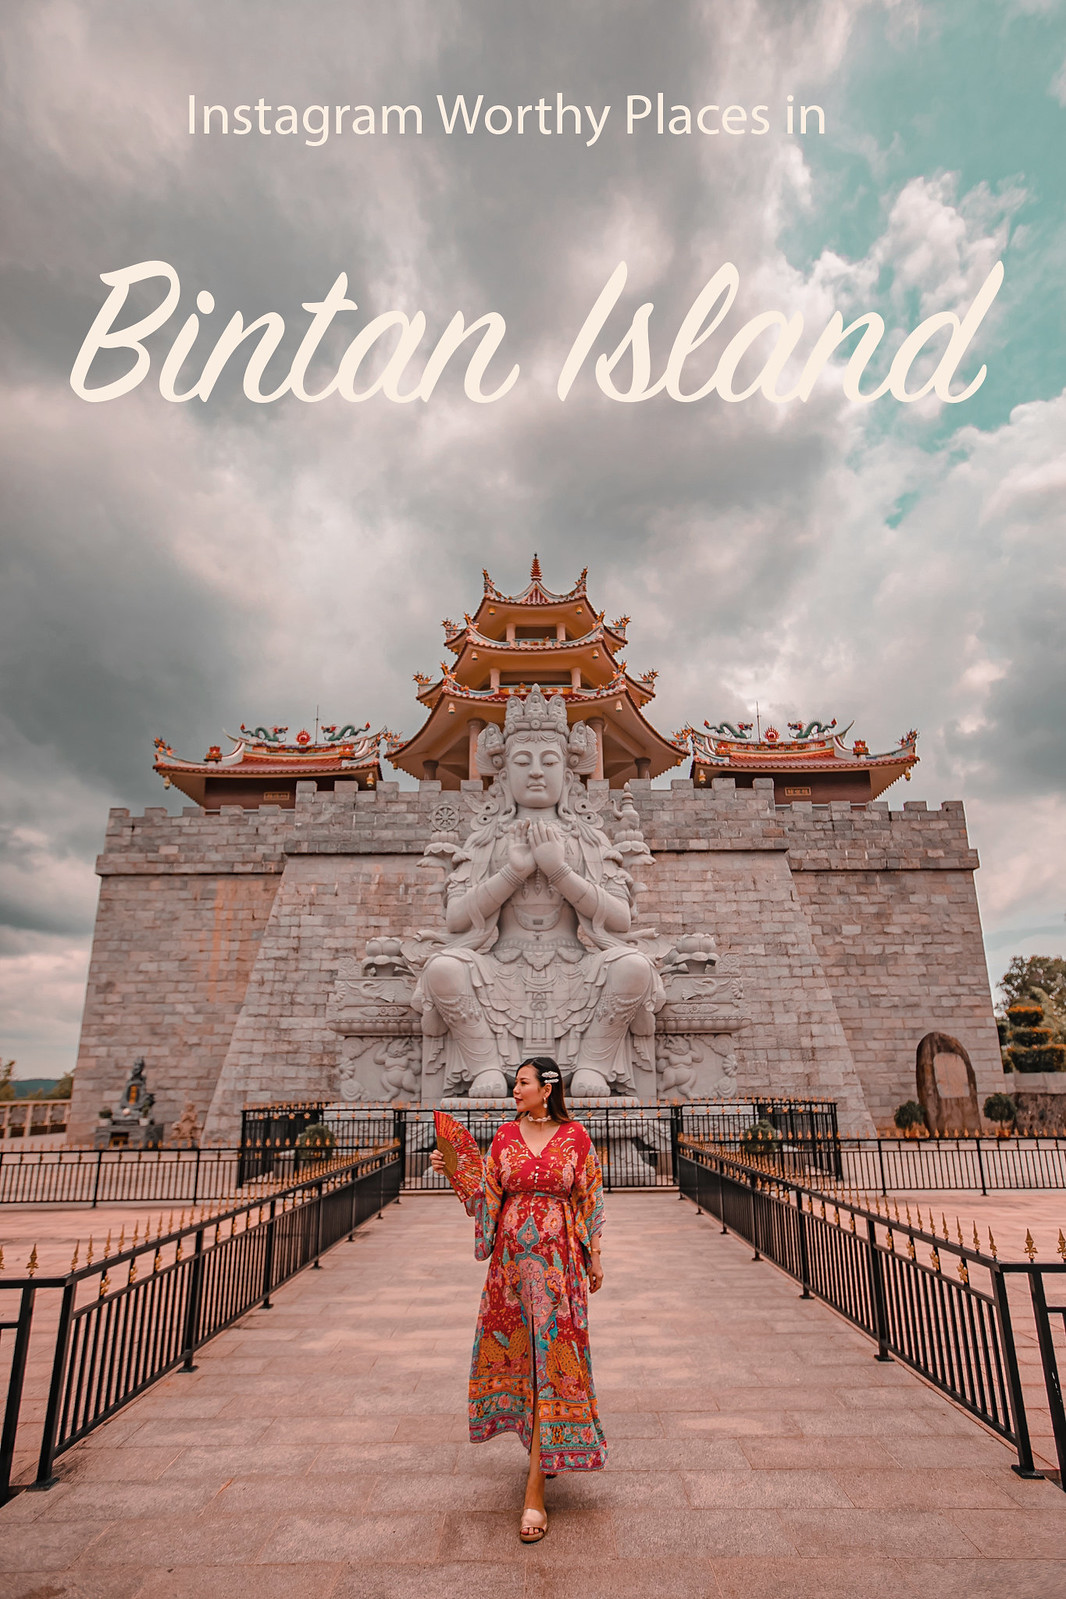 [Travel] Instagram Worthy Places to Visit in Bintan Island for Half A Day Tour